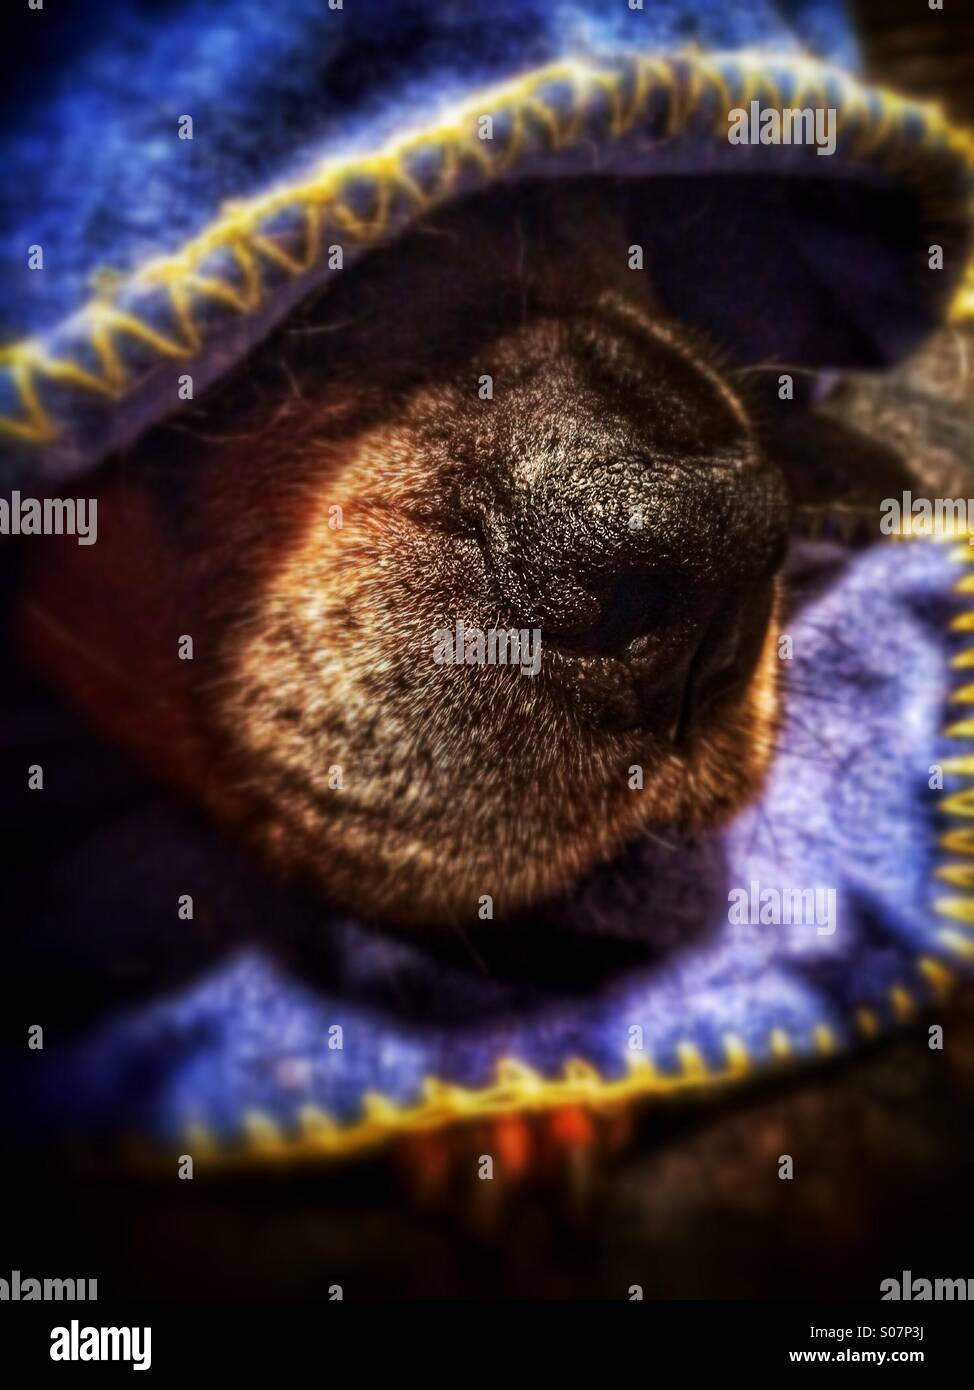 Rottweiler dog under blanket revealing nose - Stock Image